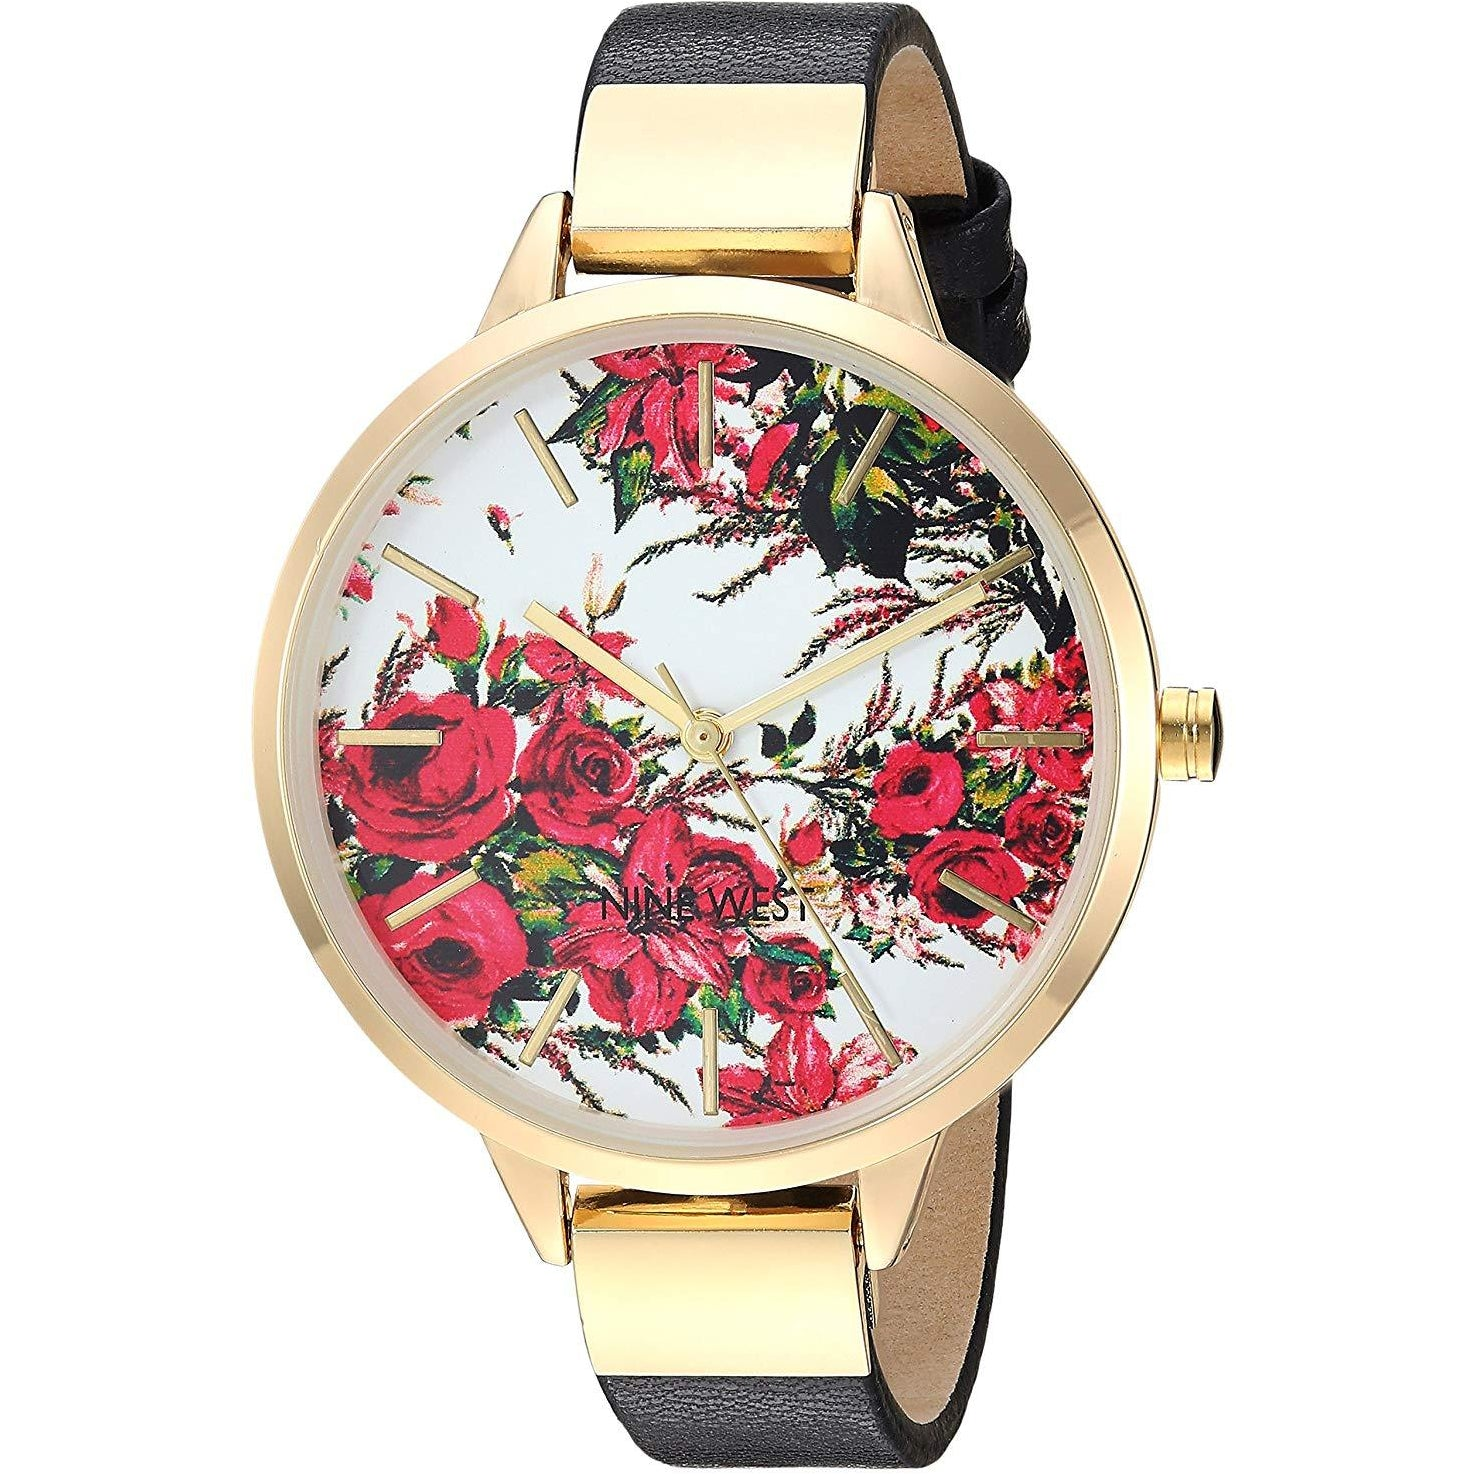 Nine West Women's NW/2176 Floral Dial Strap Watch